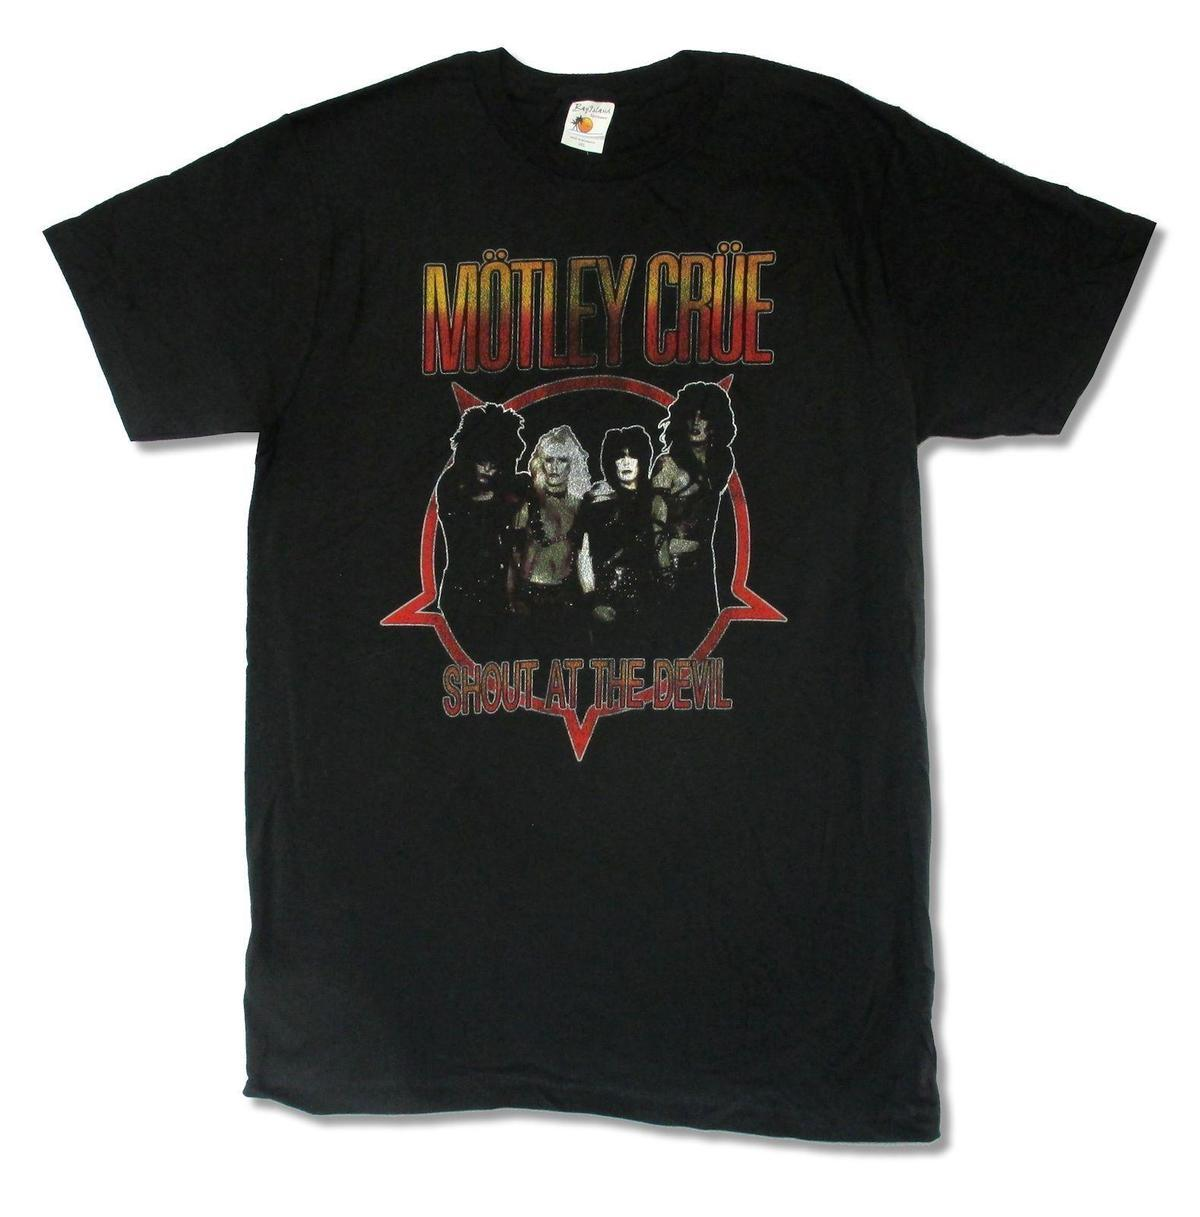 a4ec1d625ab Motley Crue Shout At The Devil Mens Black T Shirt New Official Business Tee  Shirts Printing Coolest T Shirts Online From Pxue3308